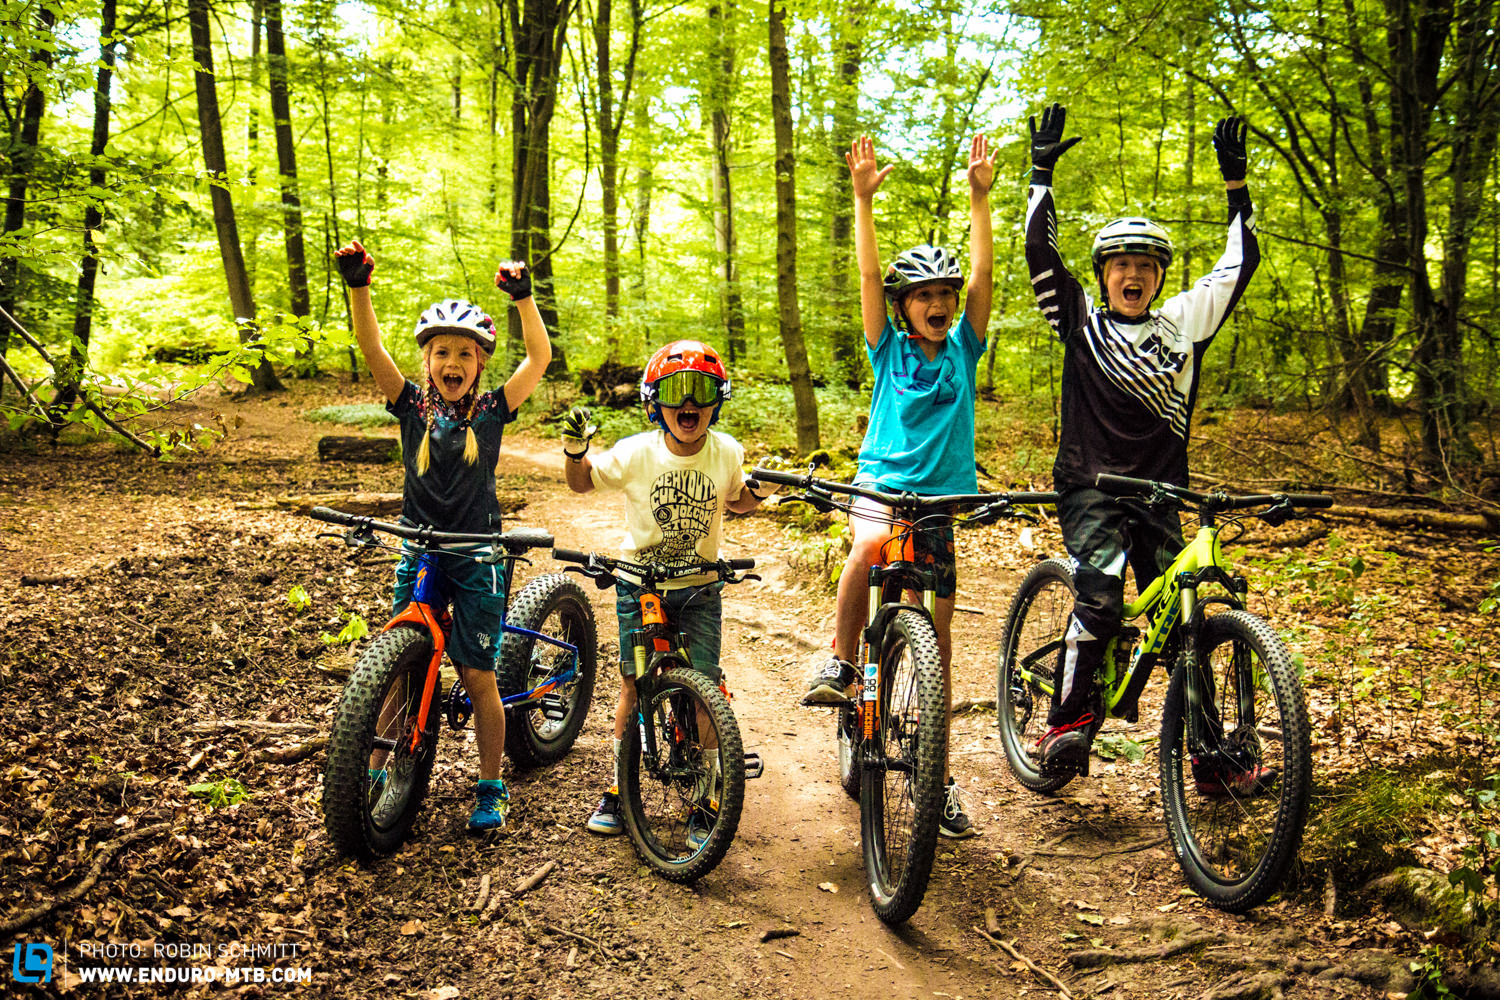 ead0a7b00a3 Buyer's Guide: Which Kids Bike to buy for your Little Shredder ...